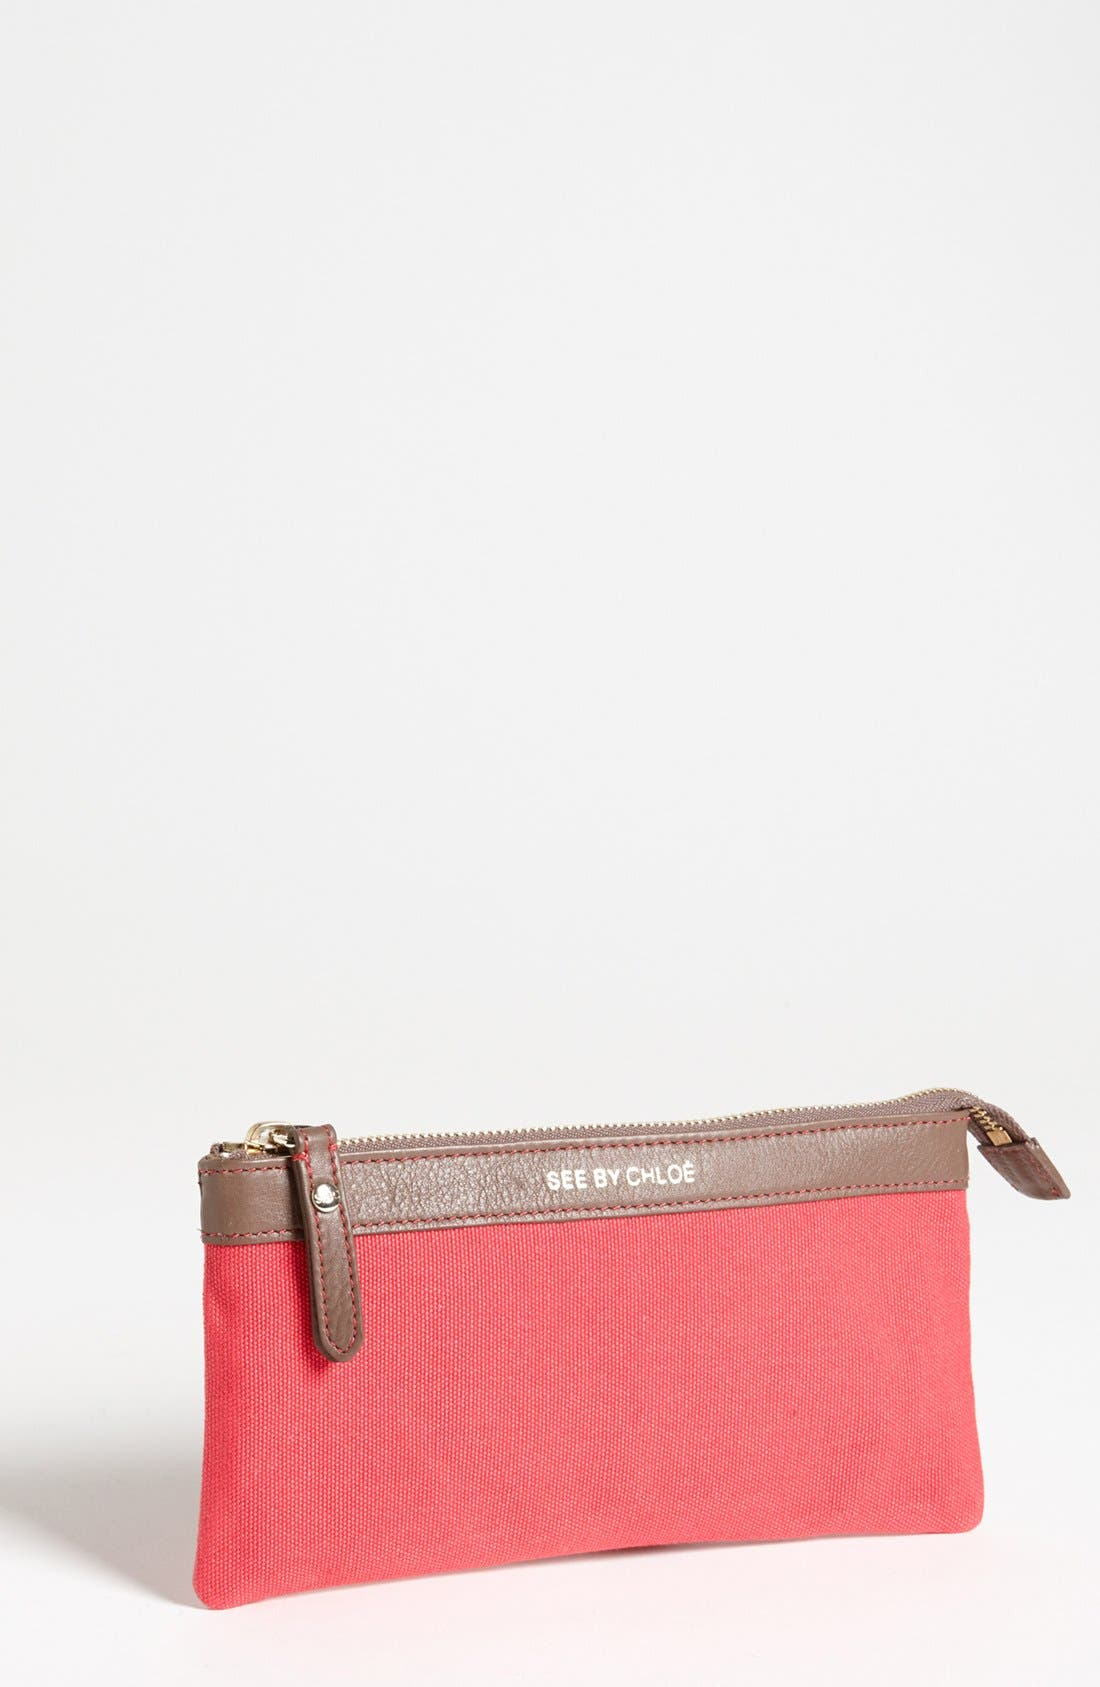 Alternate Image 1 Selected - See by Chloé 'Agathe' Zip Top Pouch